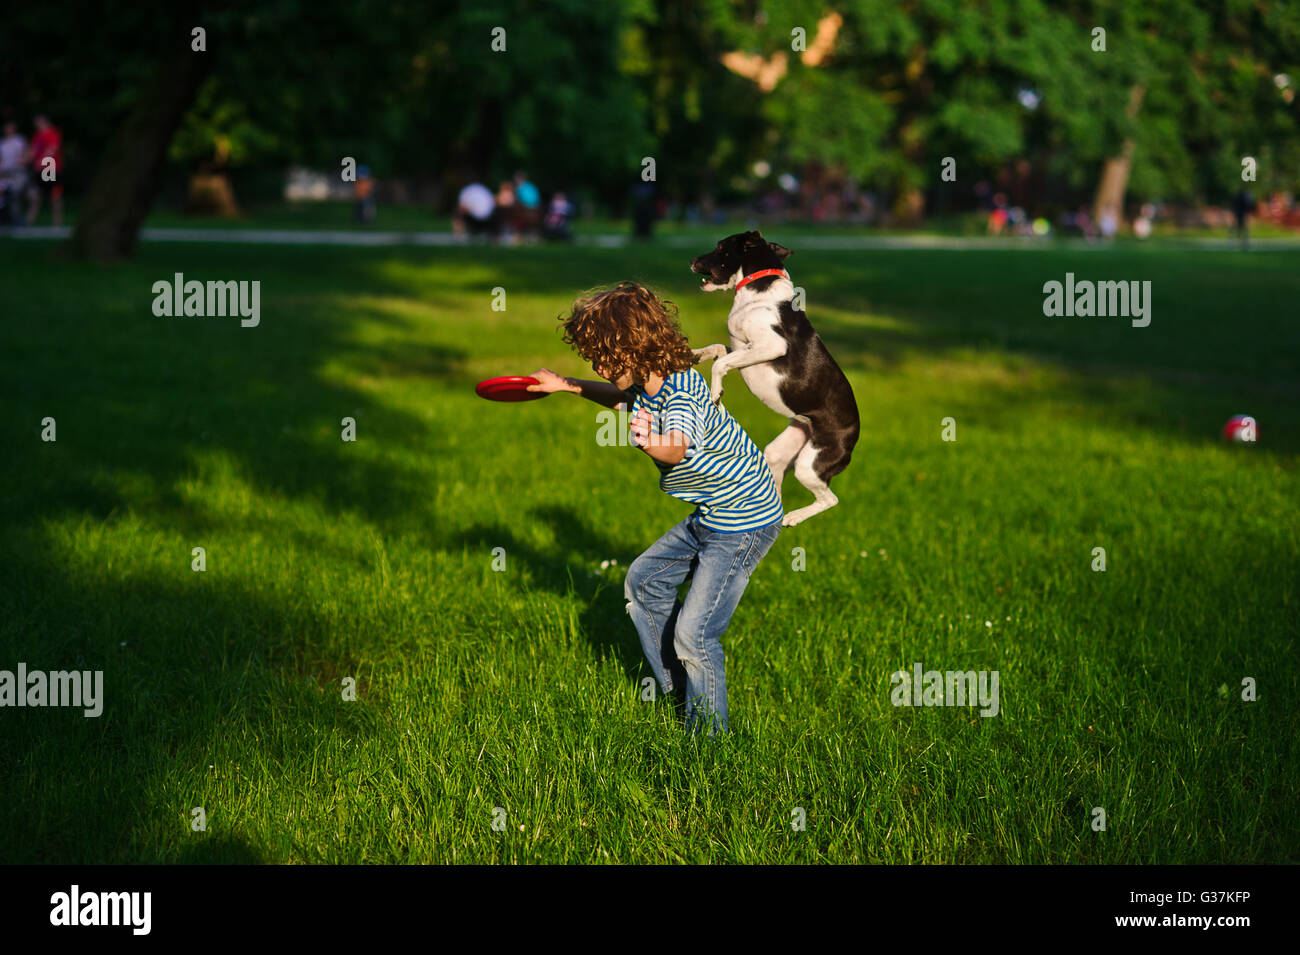 The boy trains a dog.In a summer garden the boy of 8-9 years plays with a dog.In a hand at the boy a disk.Highly - Stock Image